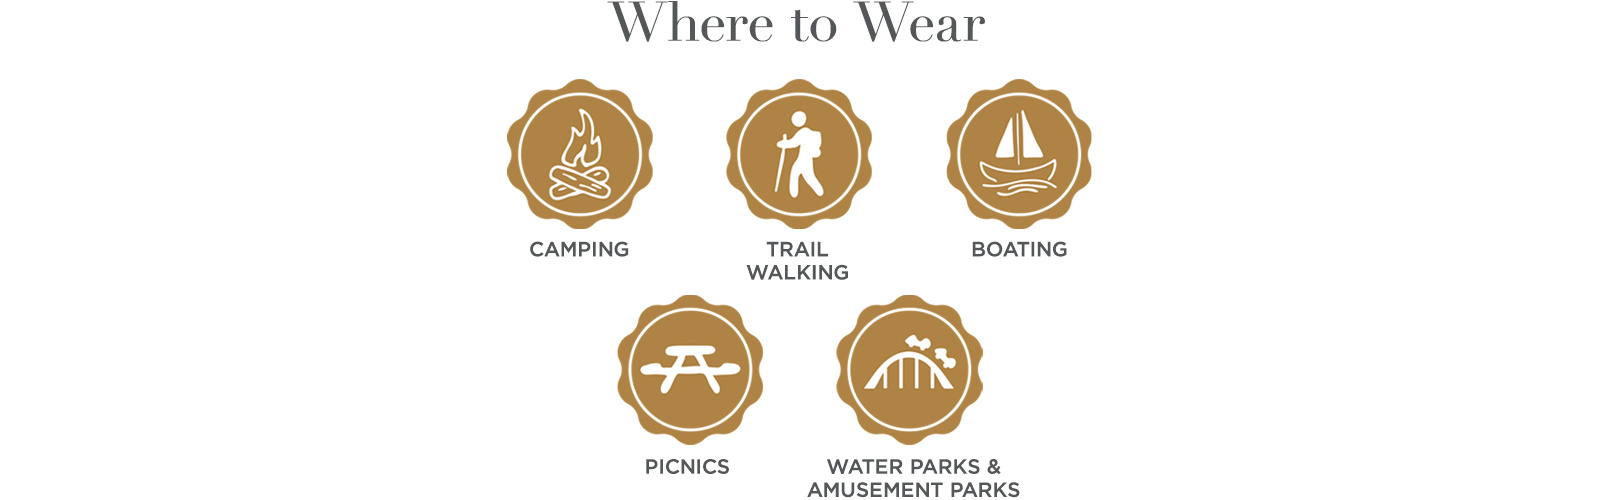 Where to Wear